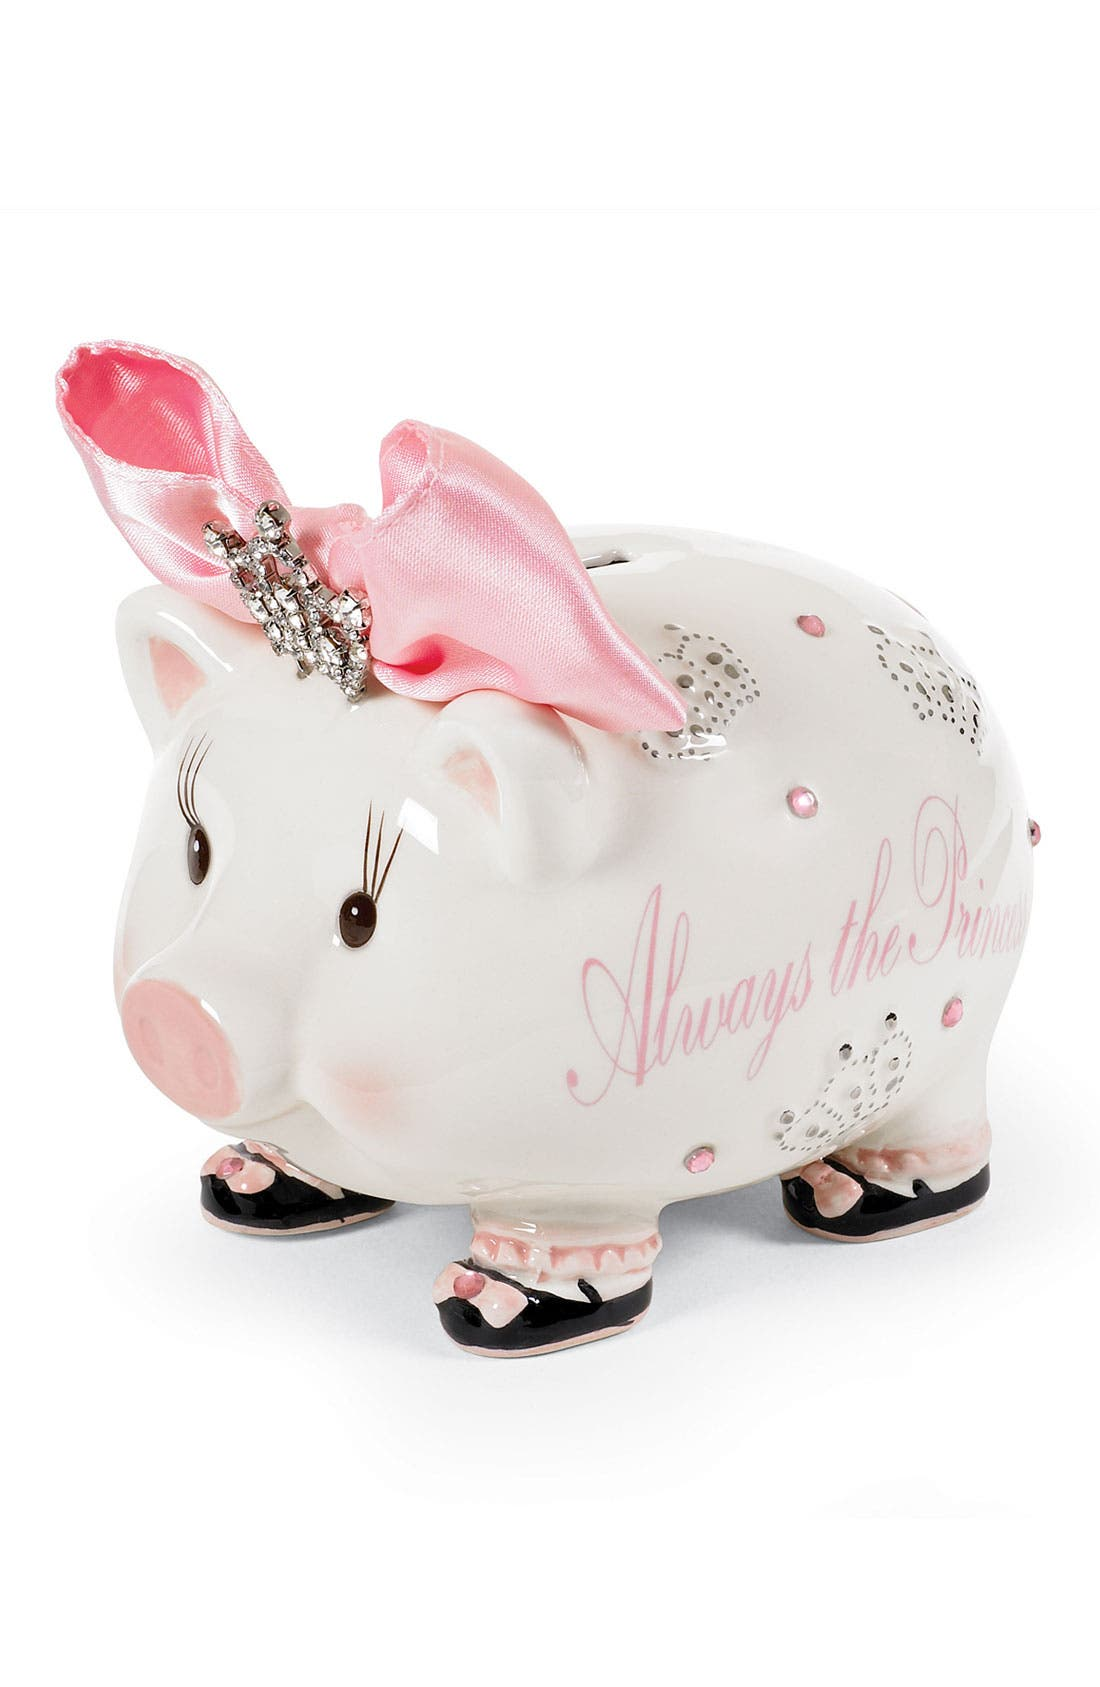 Mud Pie 'Always the Princess' Jeweled Piggy Bank